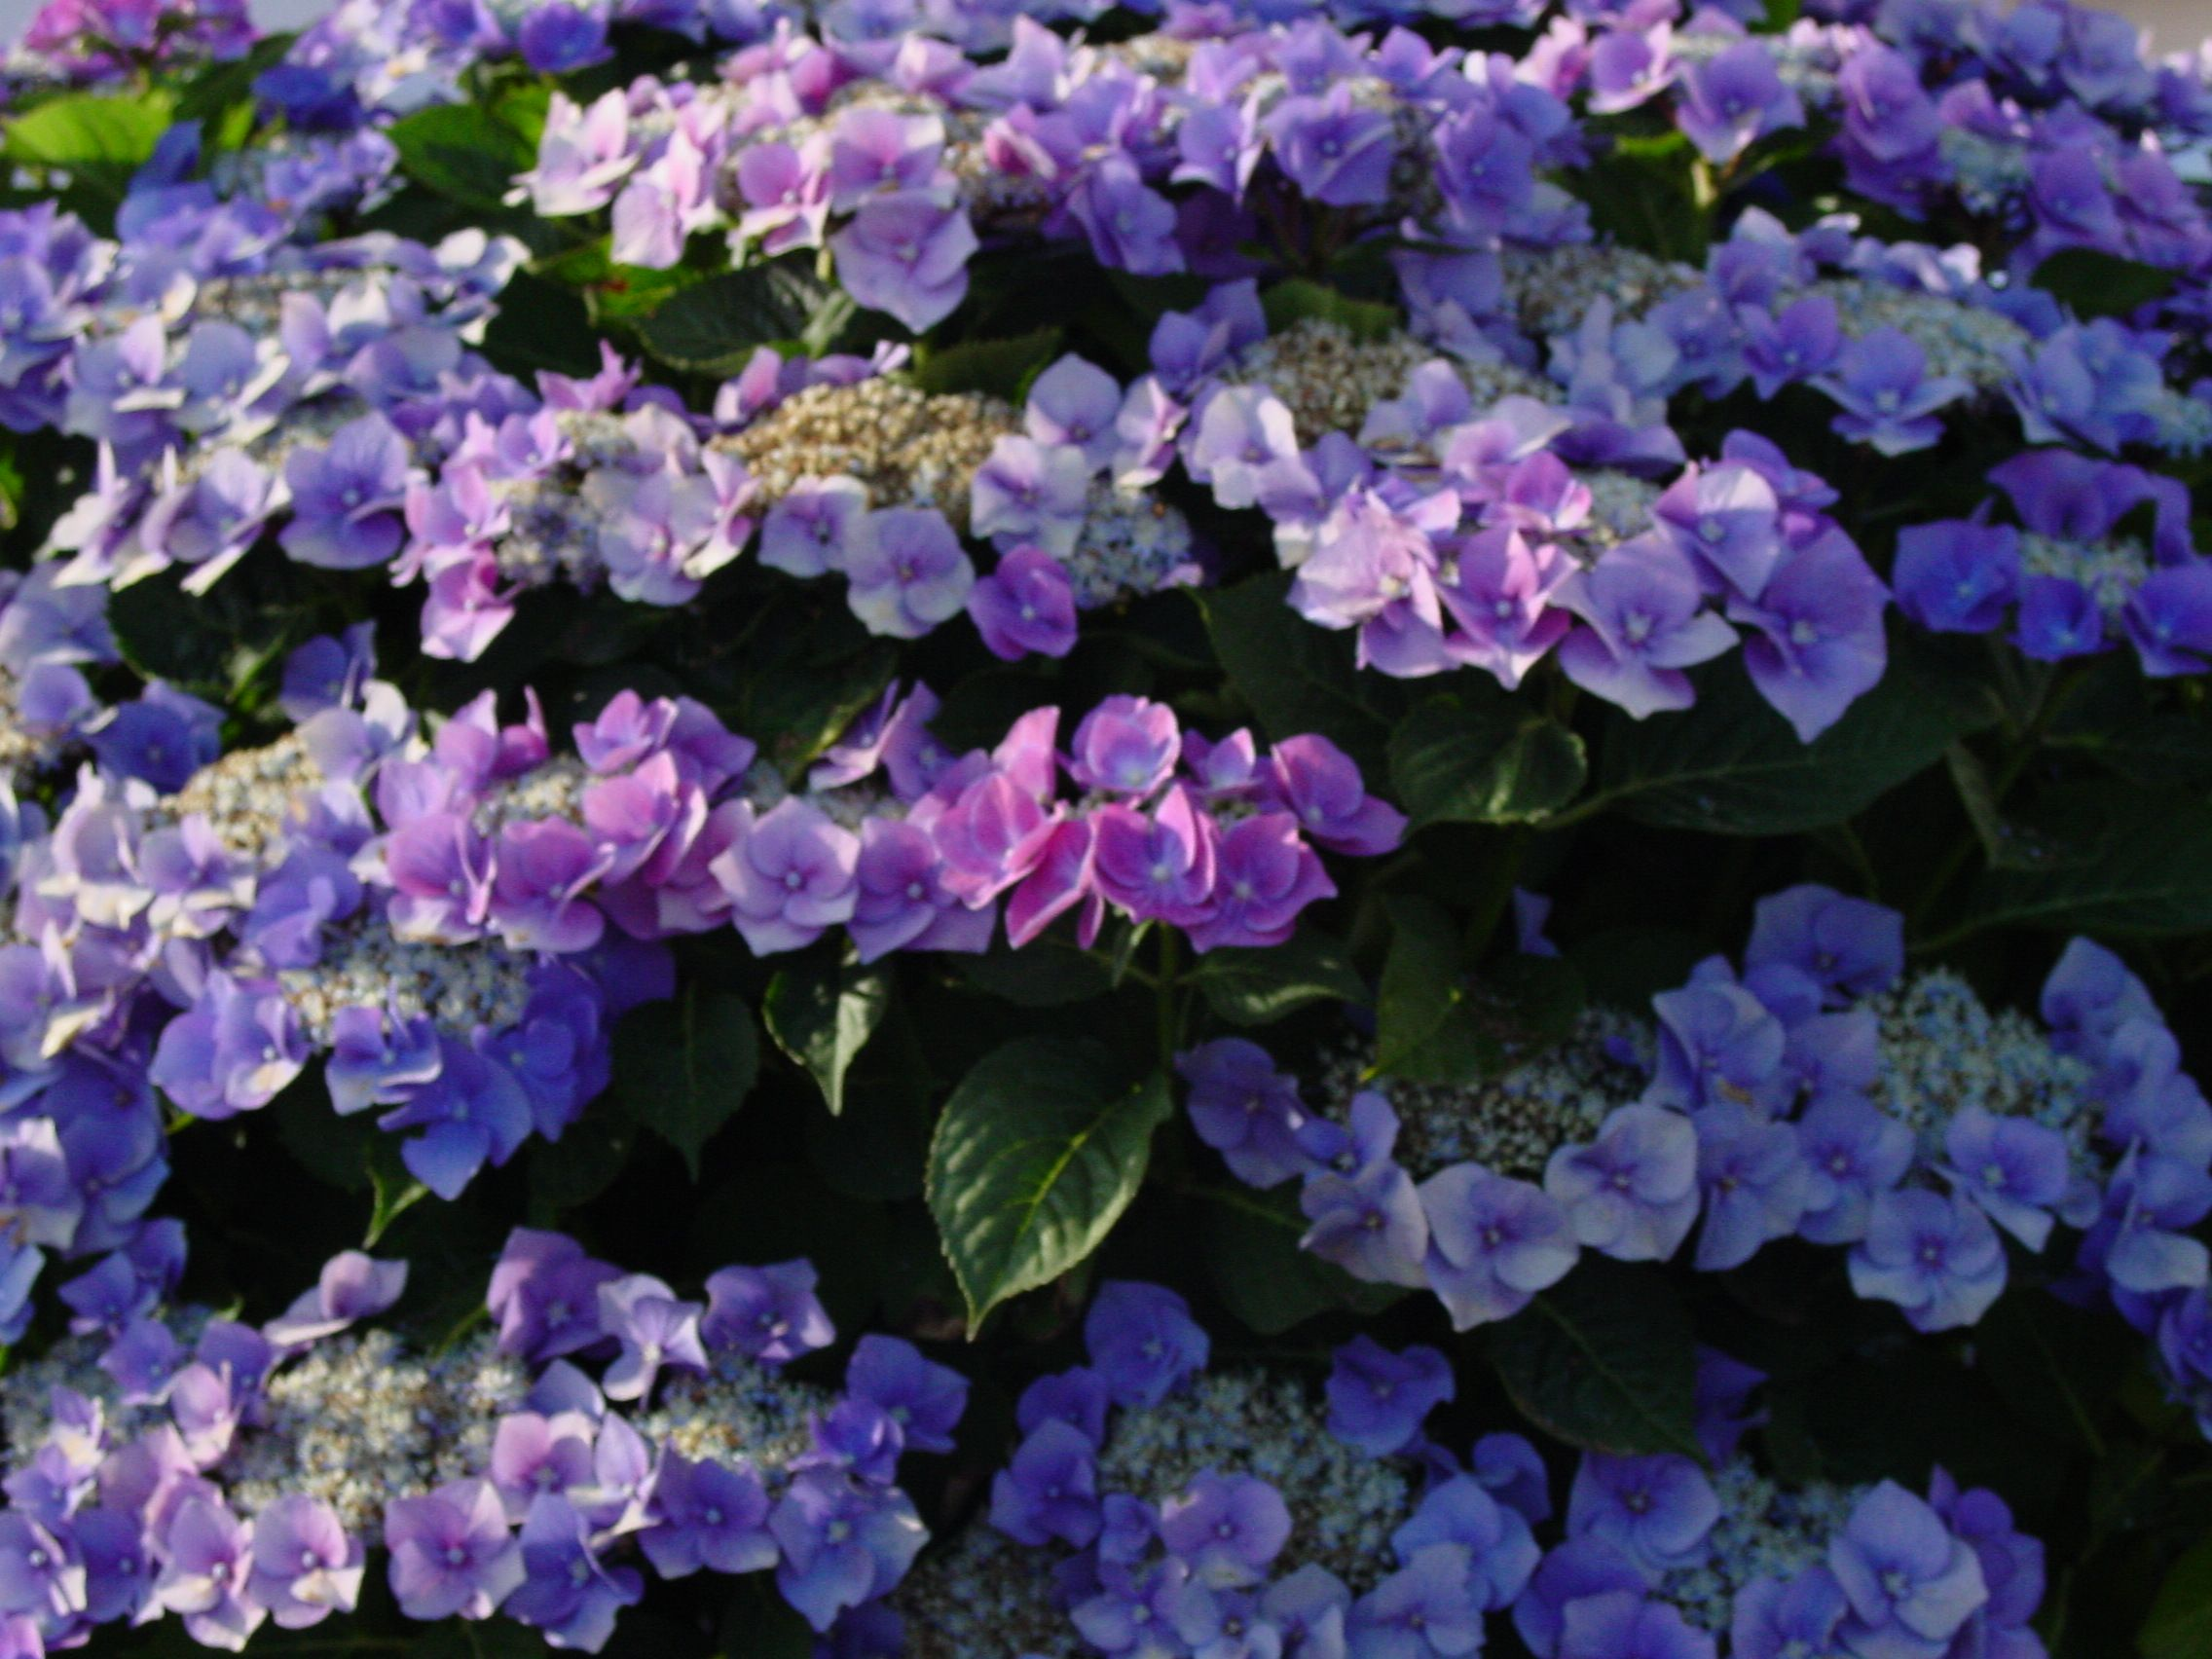 Hydrangea Bushes If You Put Coffee Grounds At The Base It Will Change